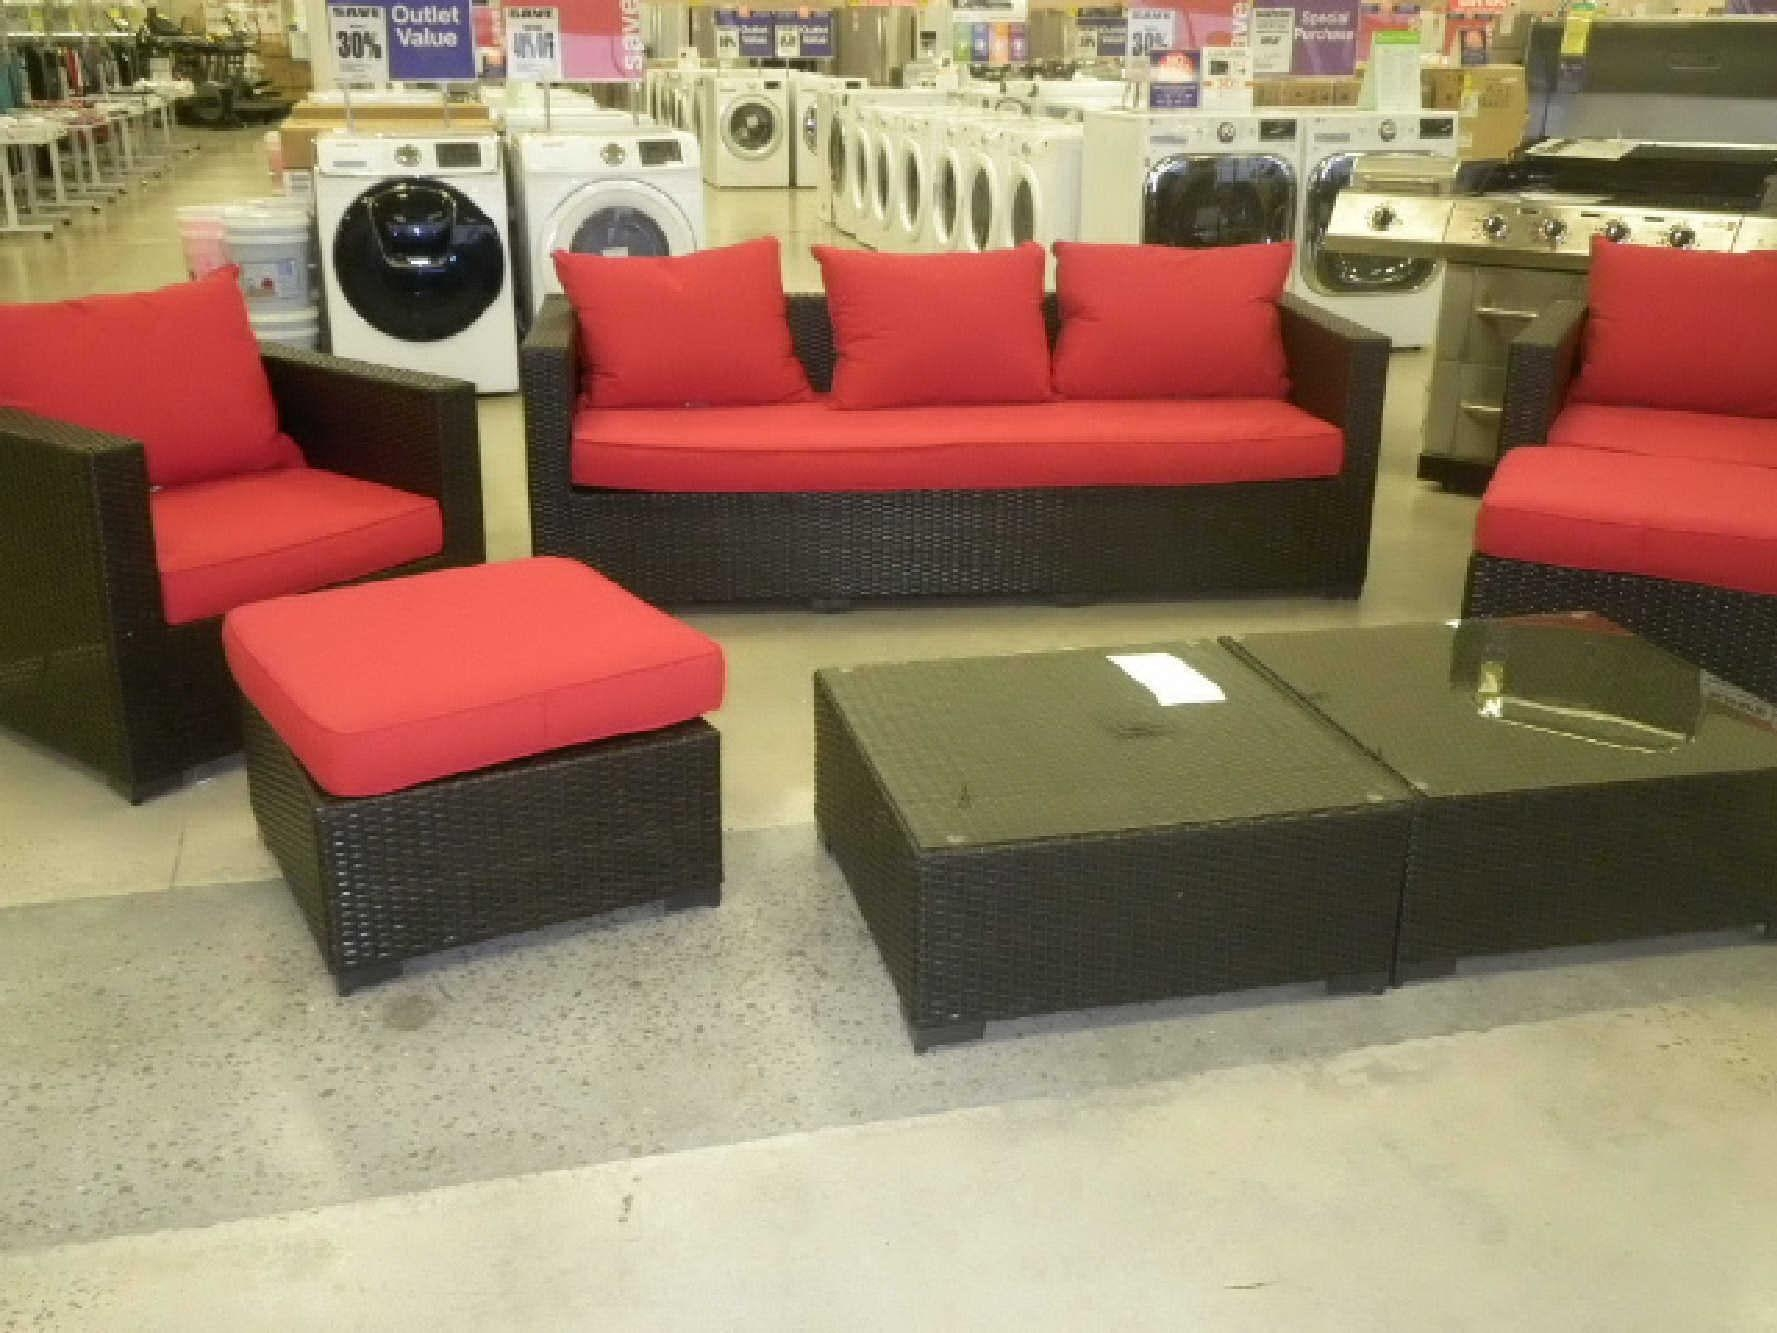 Sears Outlet Sofas Sears Outlet Sofas Adrop Me Thesofa